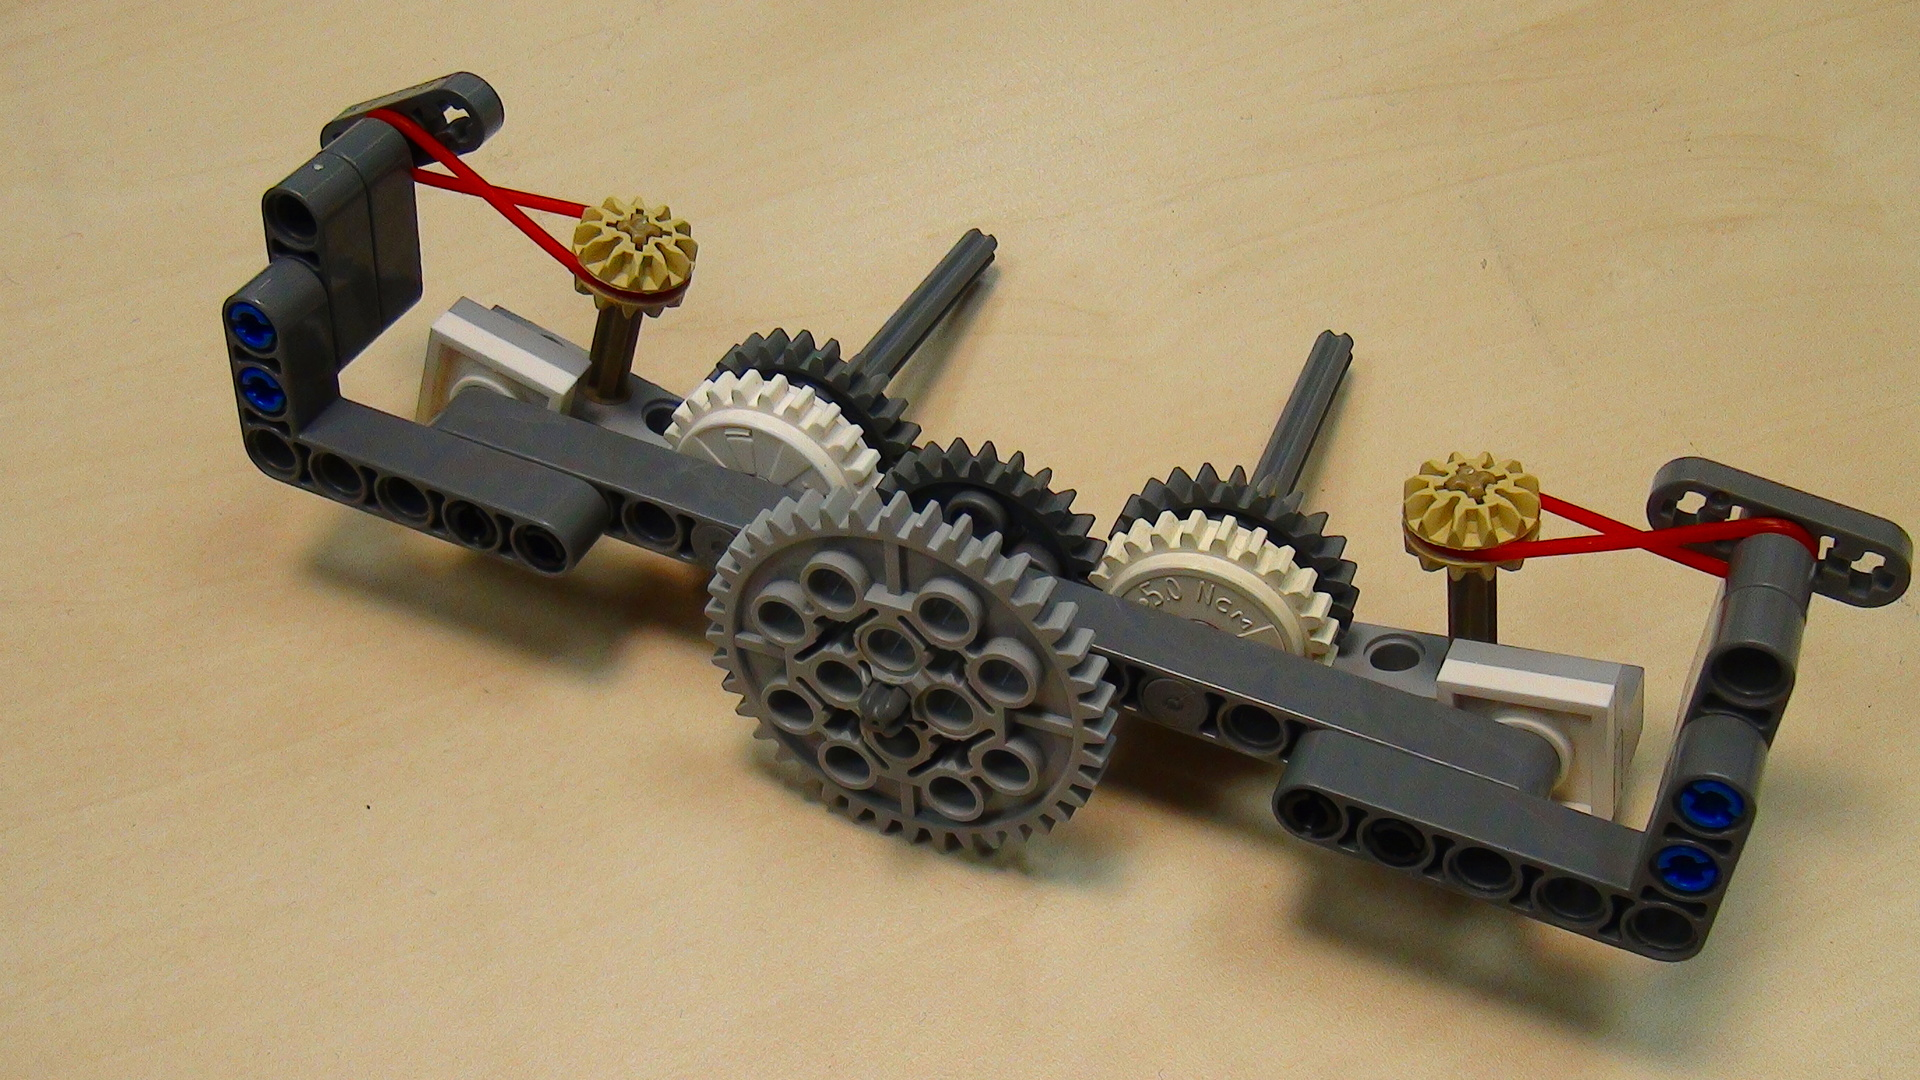 Fllcasts Turning Two Axles One At A Time In Opposite